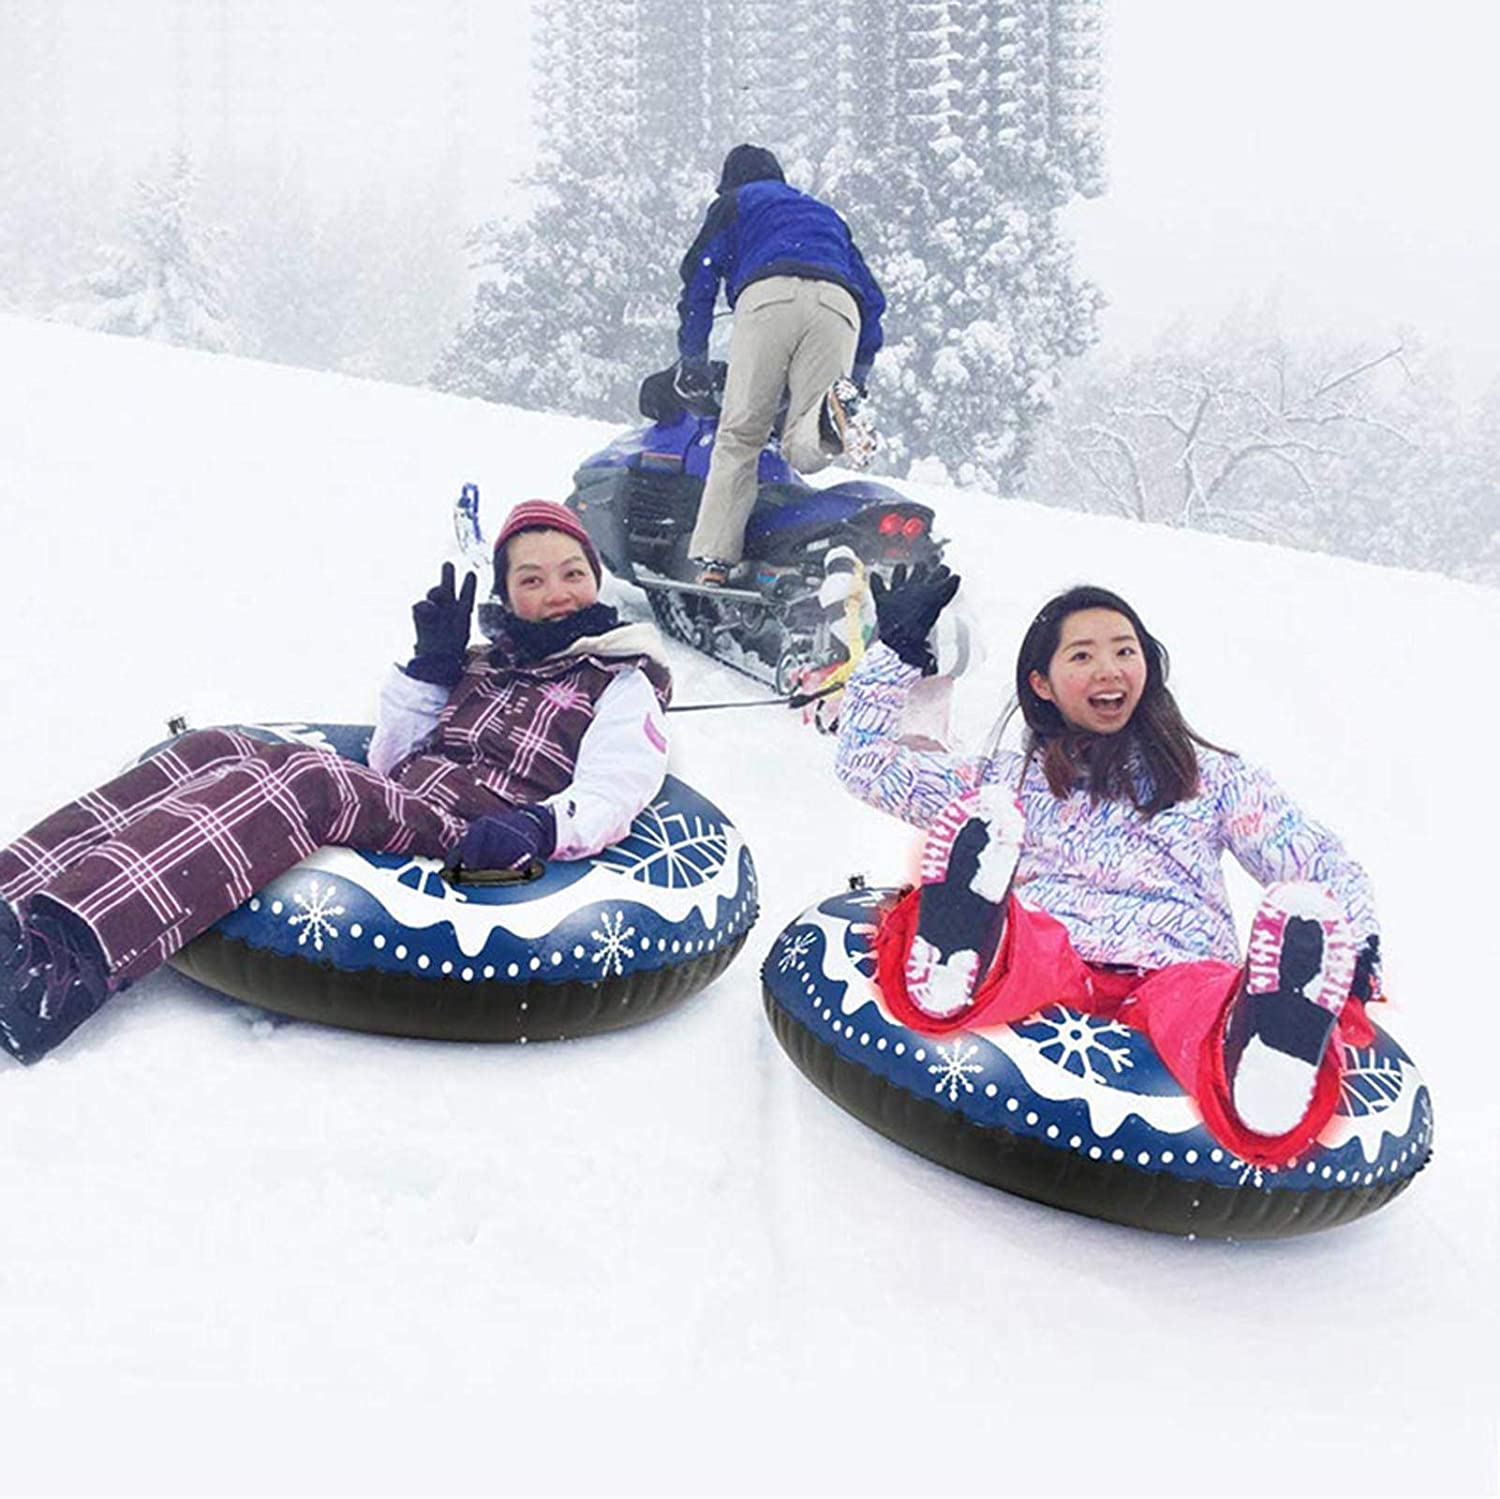 AOSEE Inflatable sledge 47Inch Inflatable Snow Tube for Kids and Adults,Thick 0.6mm PVC Snow Tubes Inflatable Float with Handles for Winter Outdoor Sledding